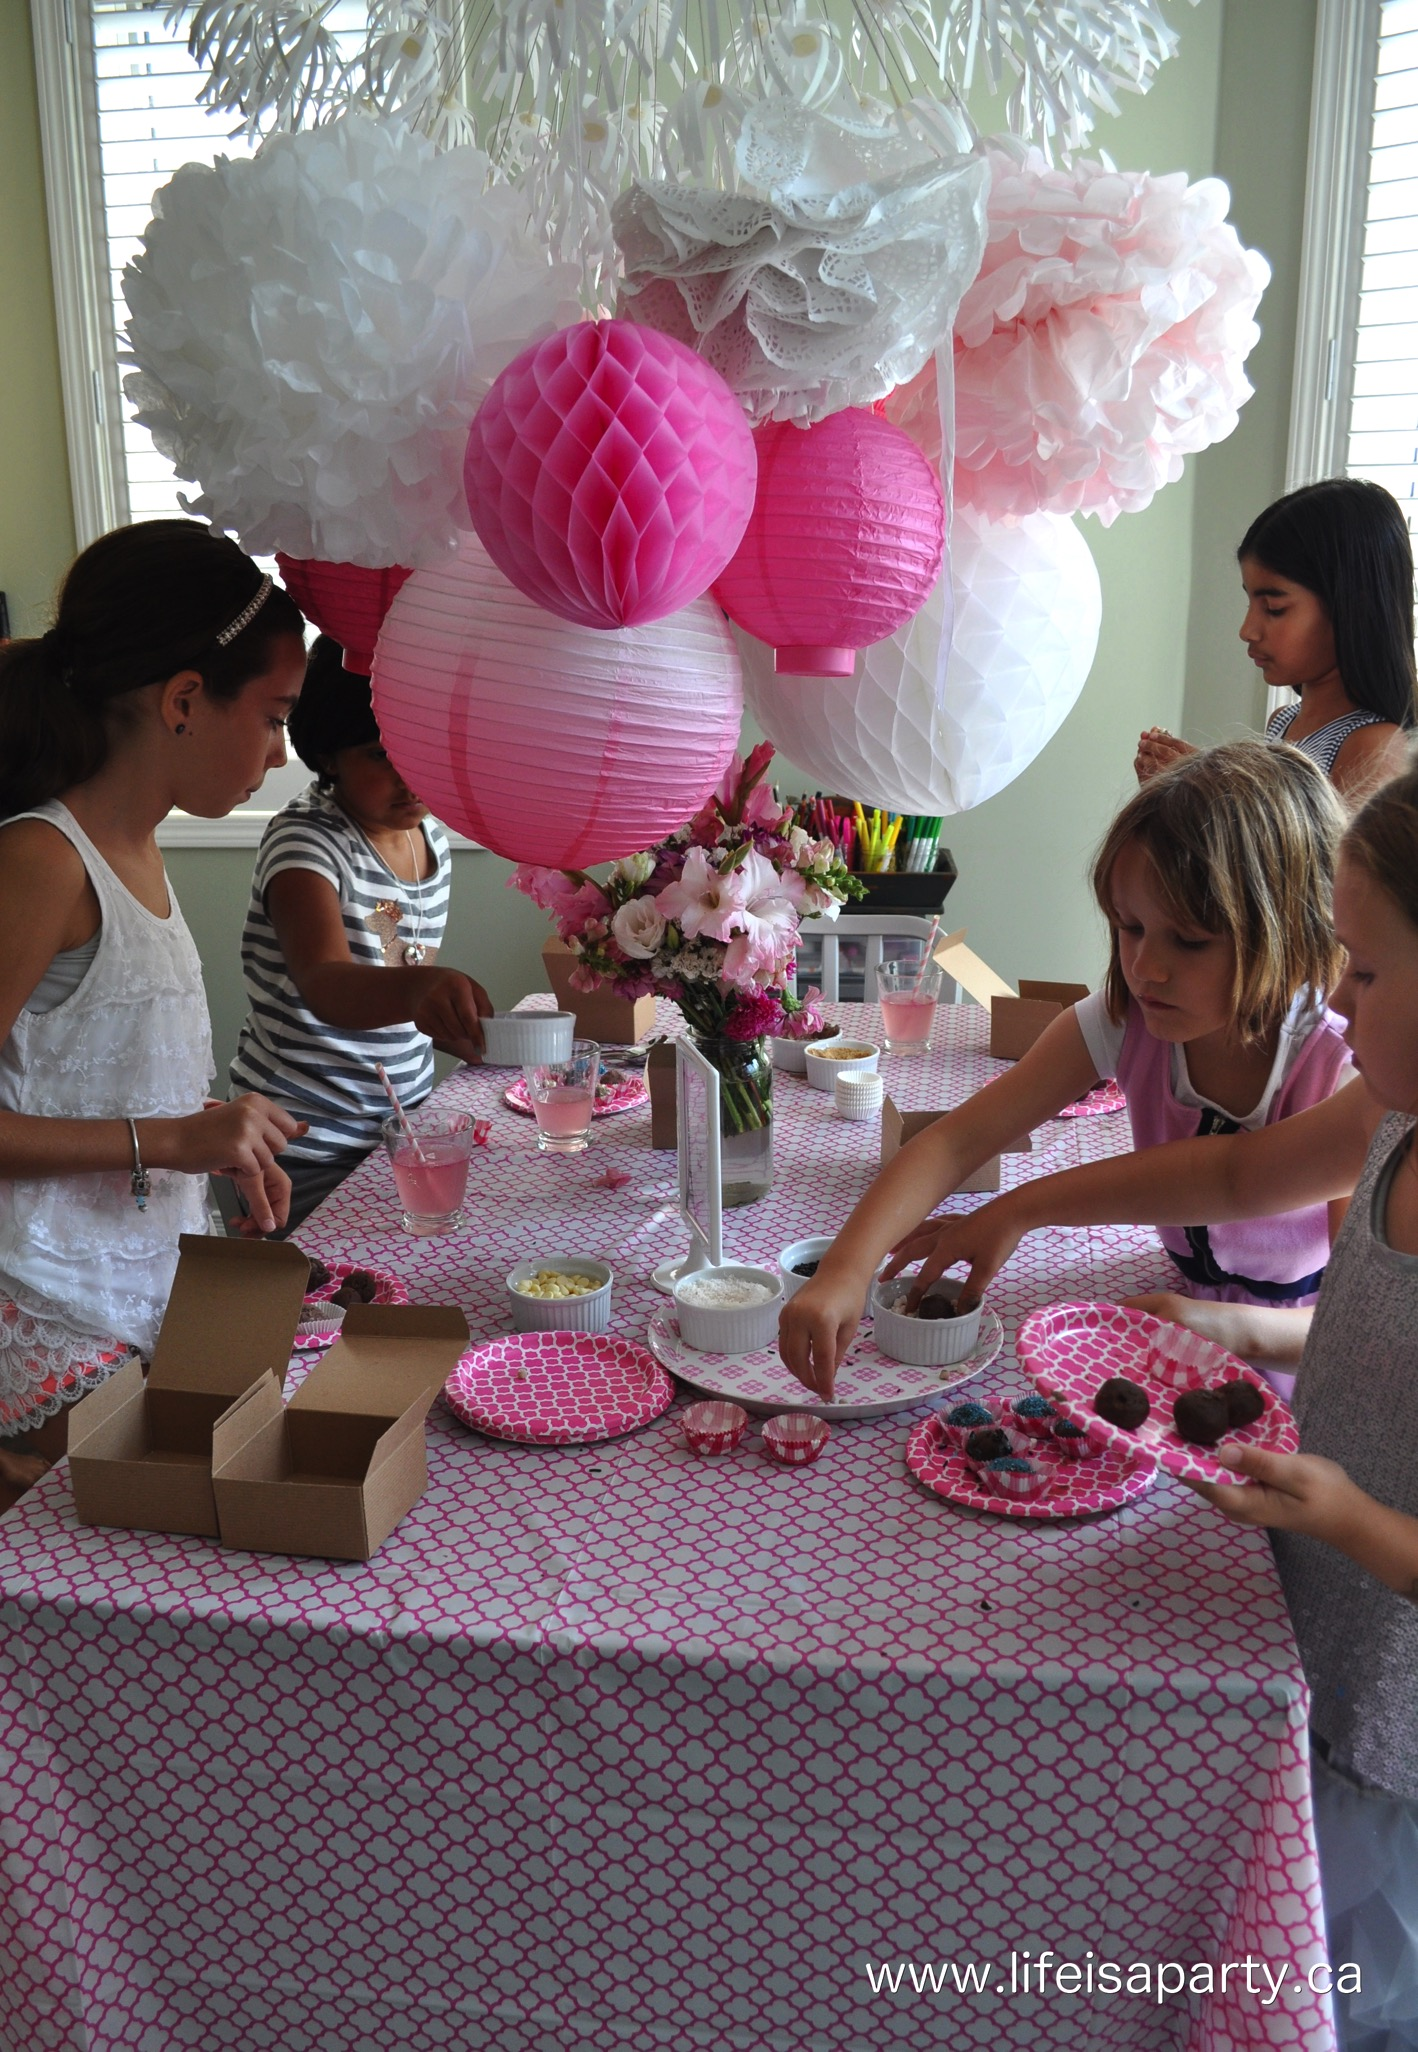 bday party activities ; paris-party-activity-ideas-3